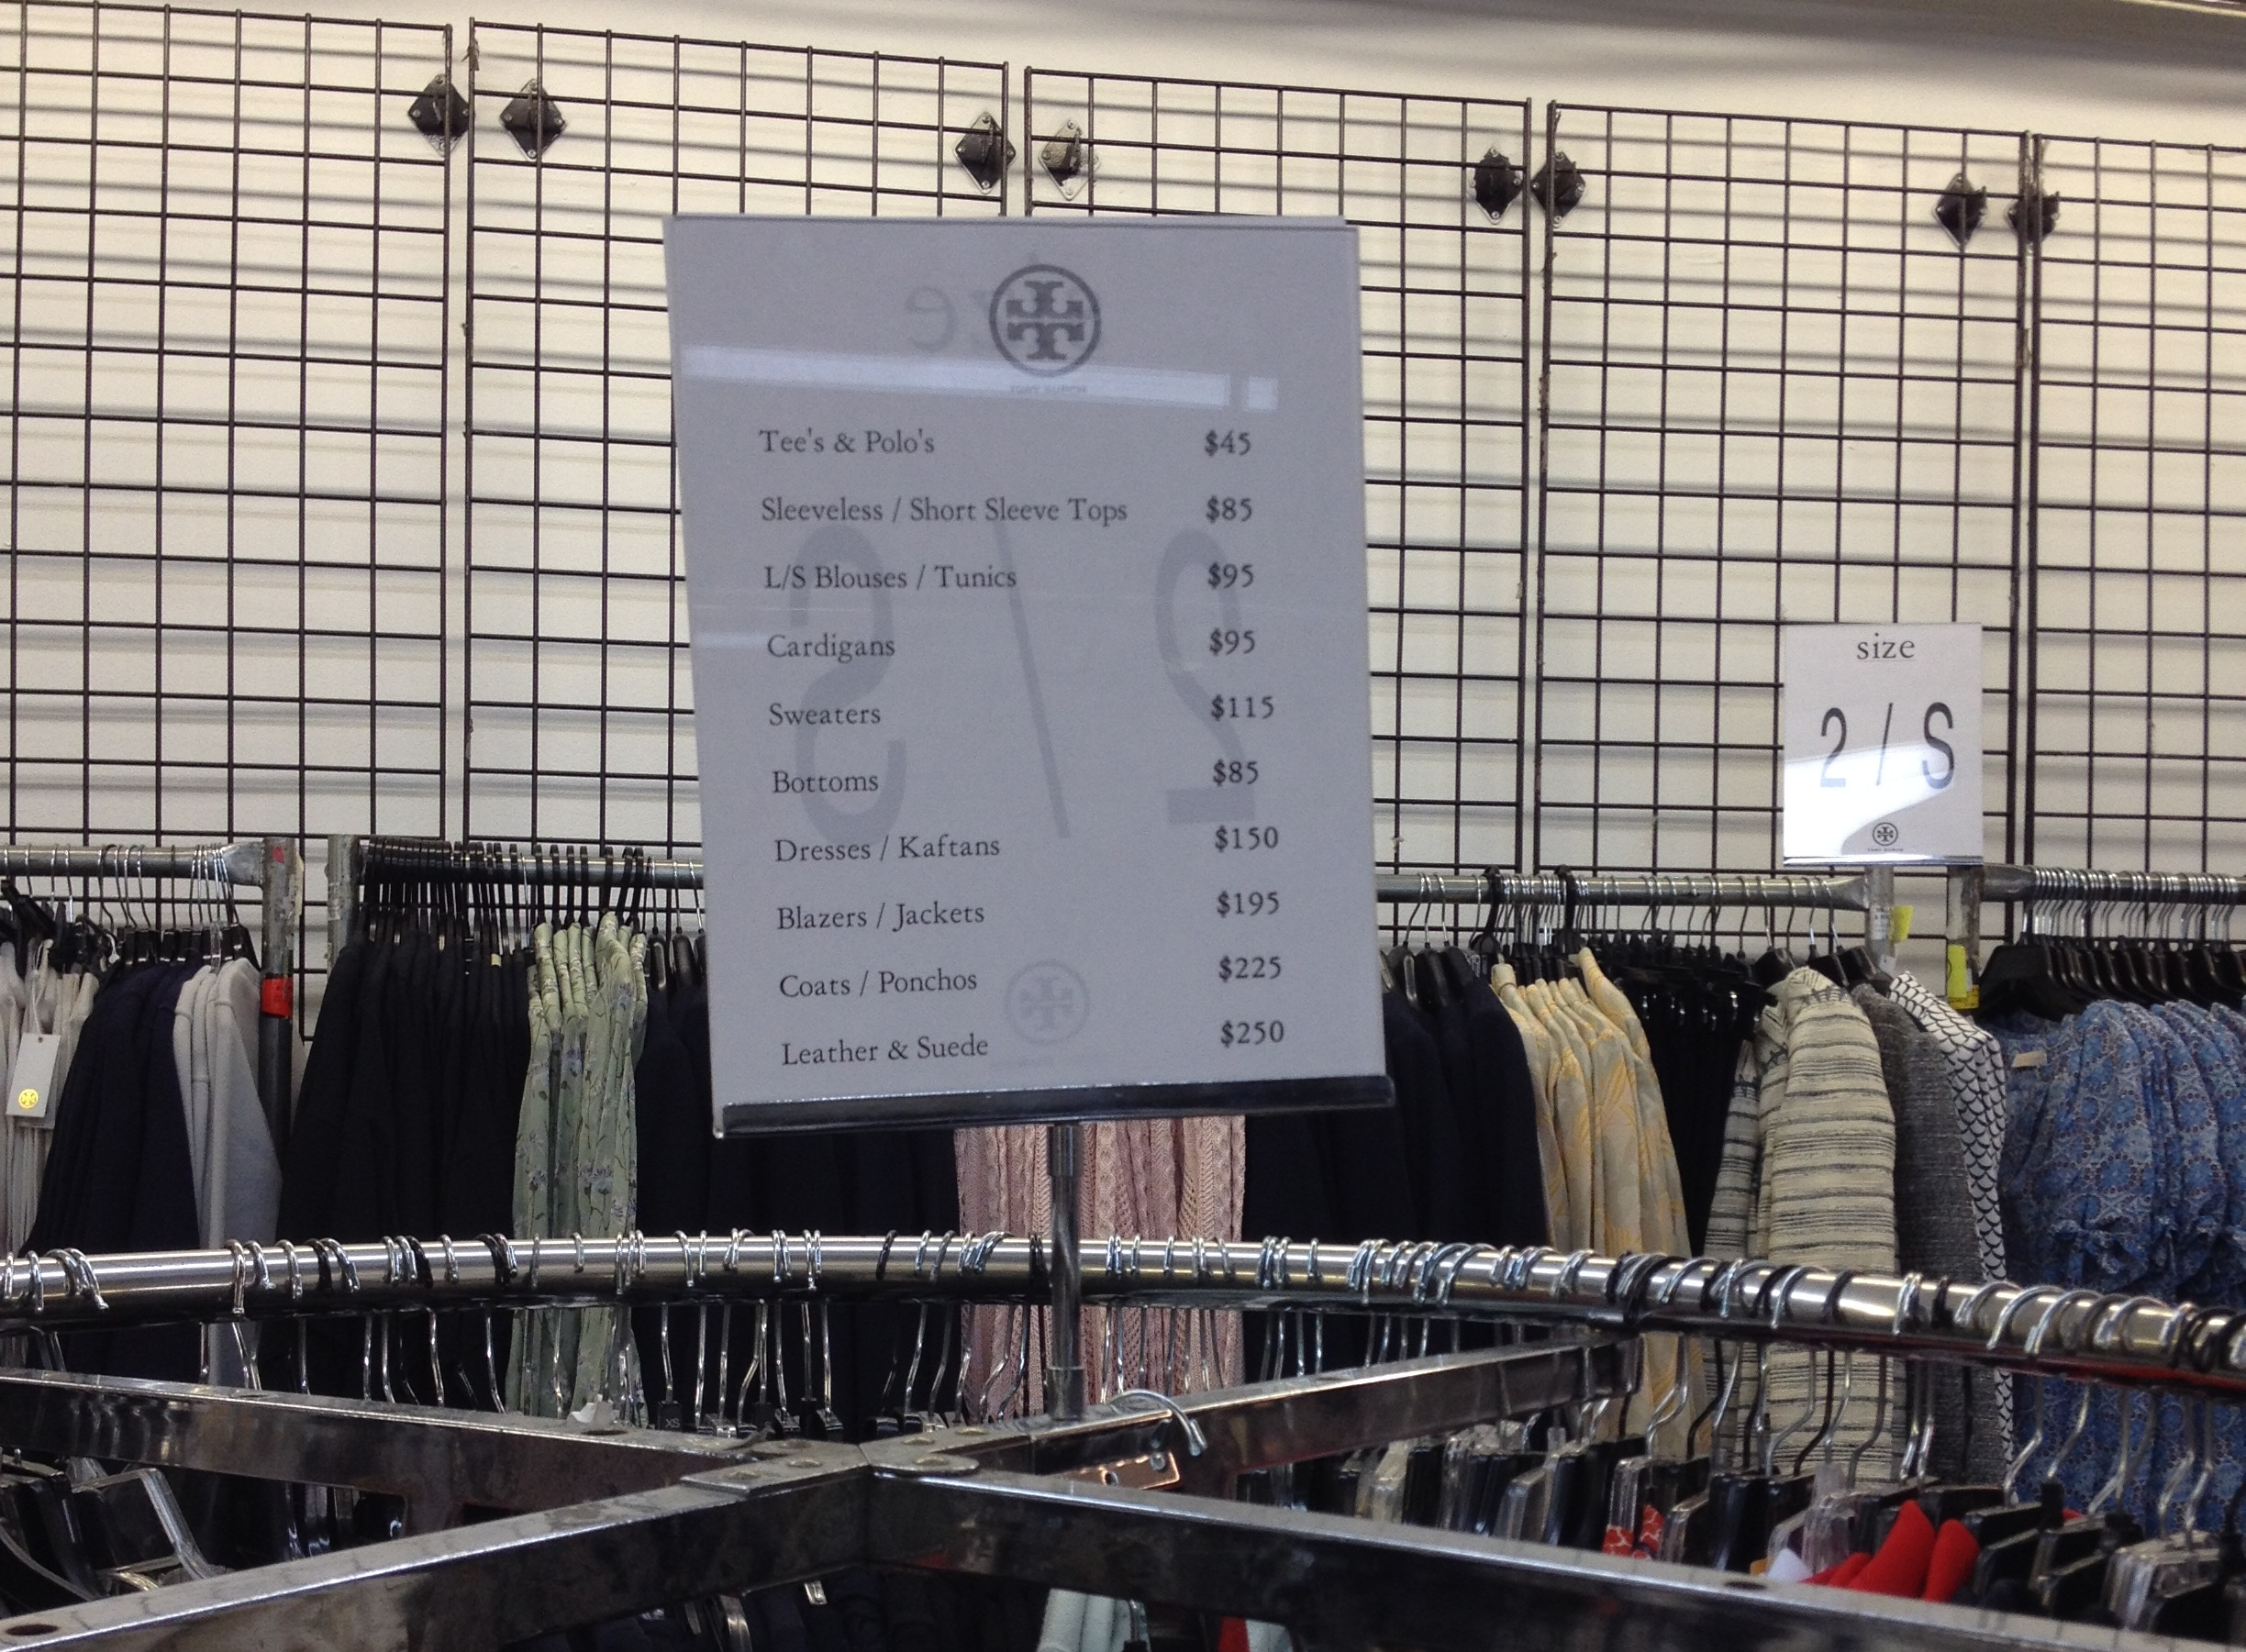 clothingline racked ny - Bcbg Sample Sale